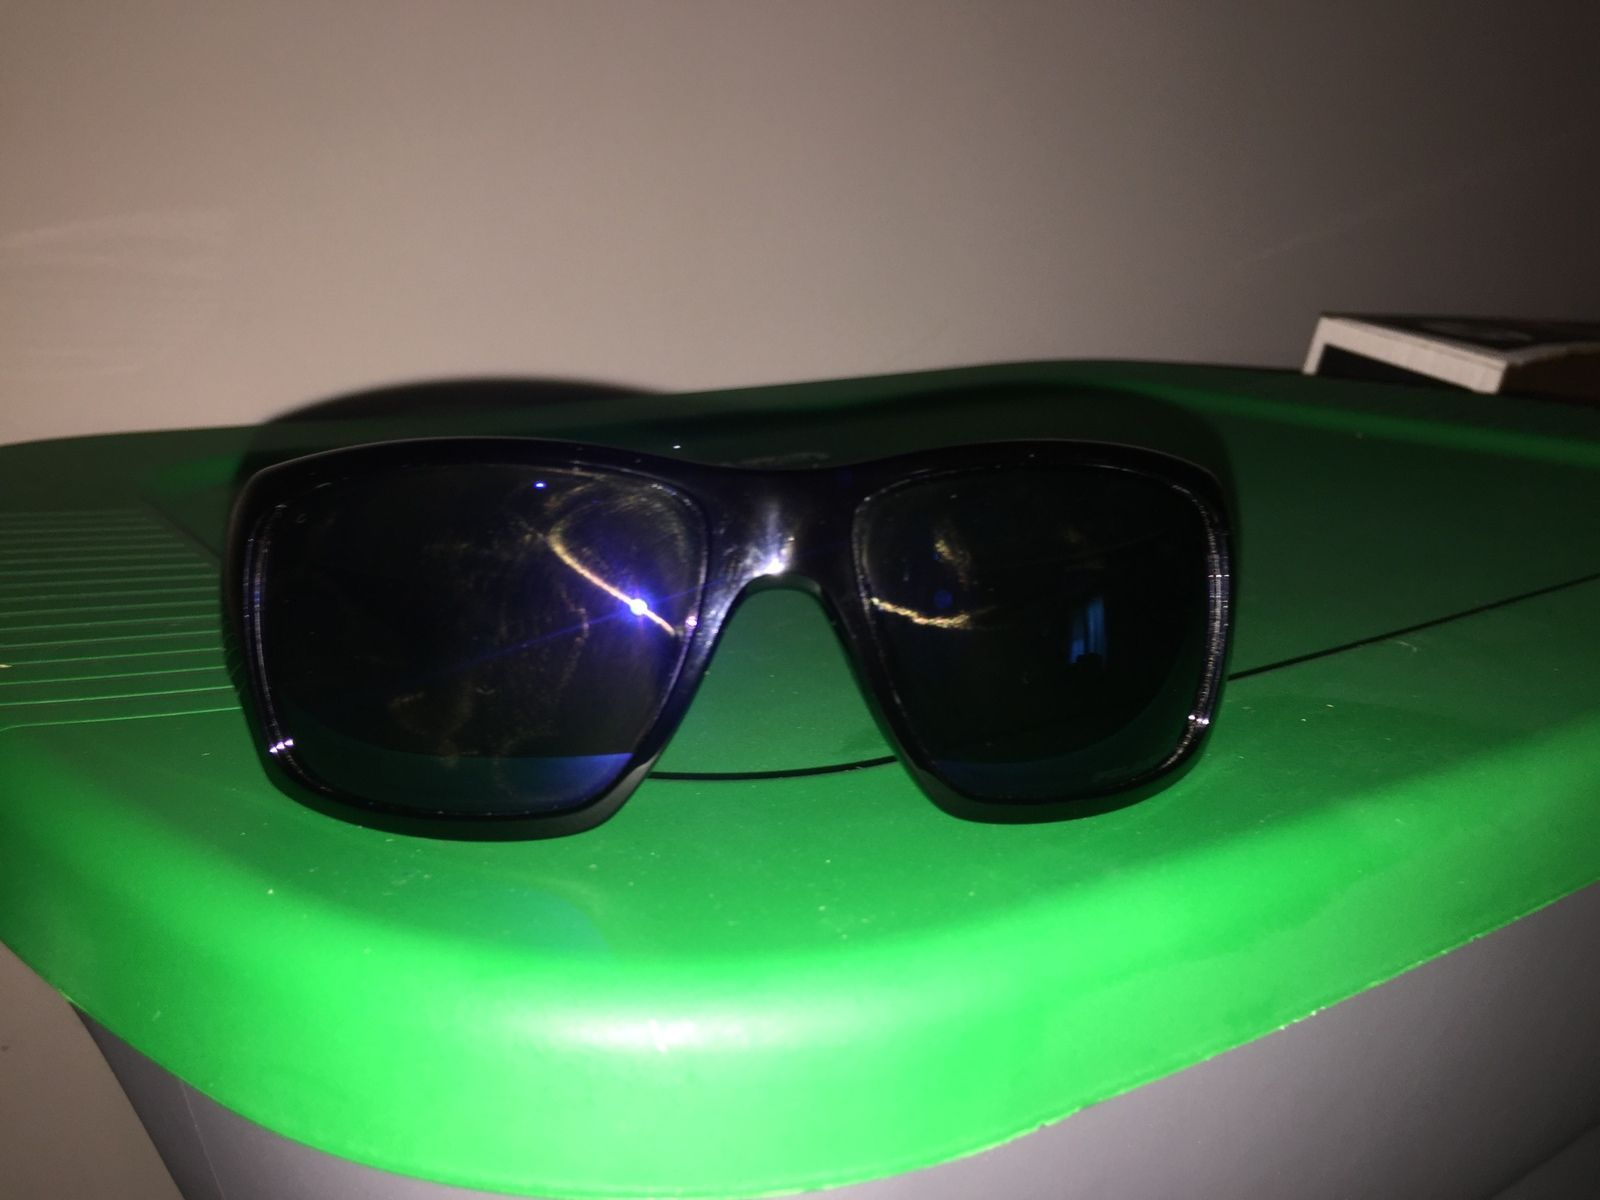 Very first pair of oakleys - rn1mfY9.jpg